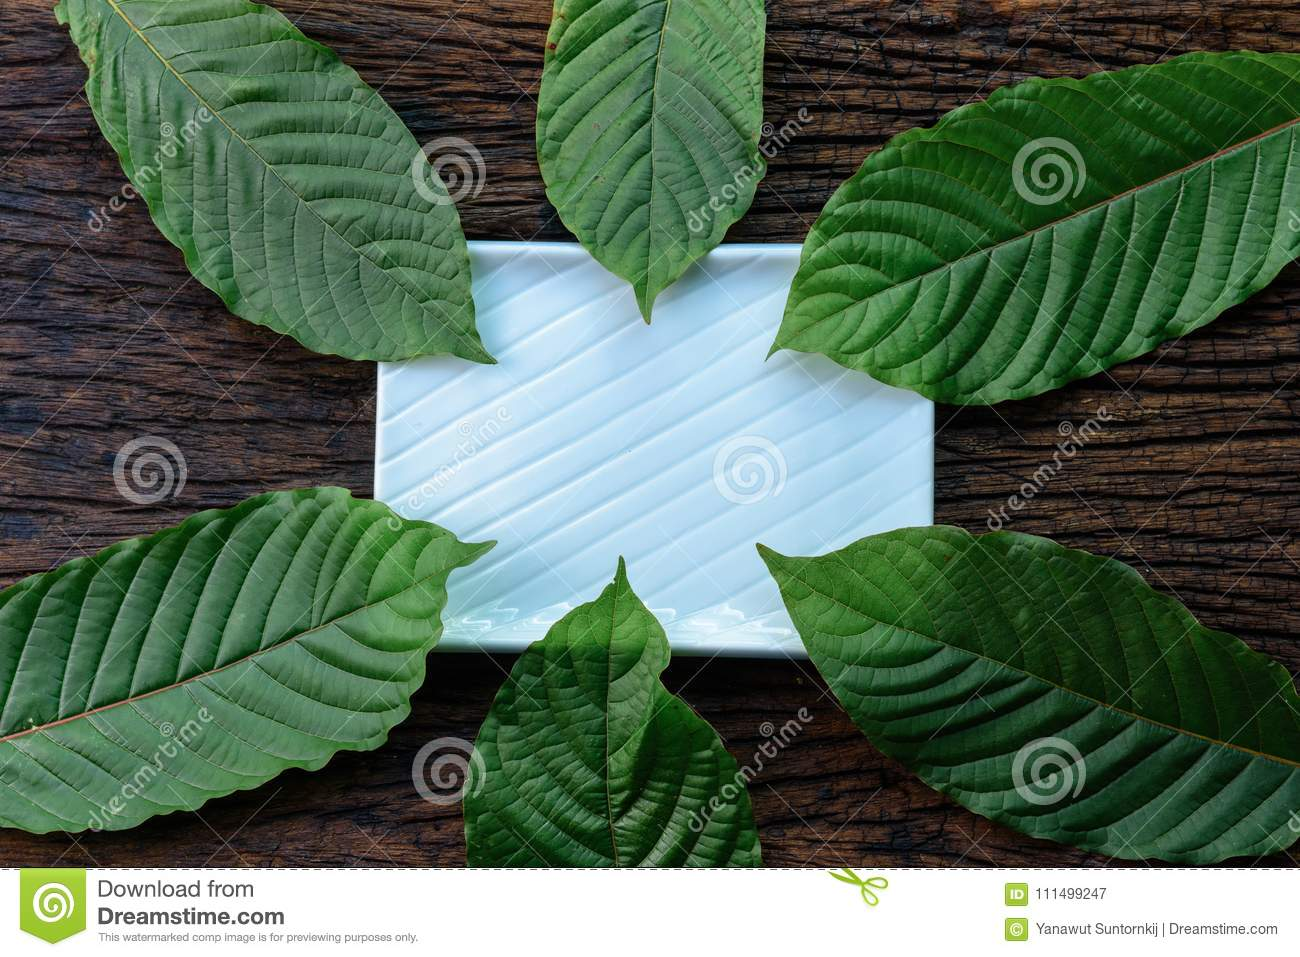 Kratom Mitragyna speciosa Mitragynine leaves frame pattern on white ceramic plate and wooden background